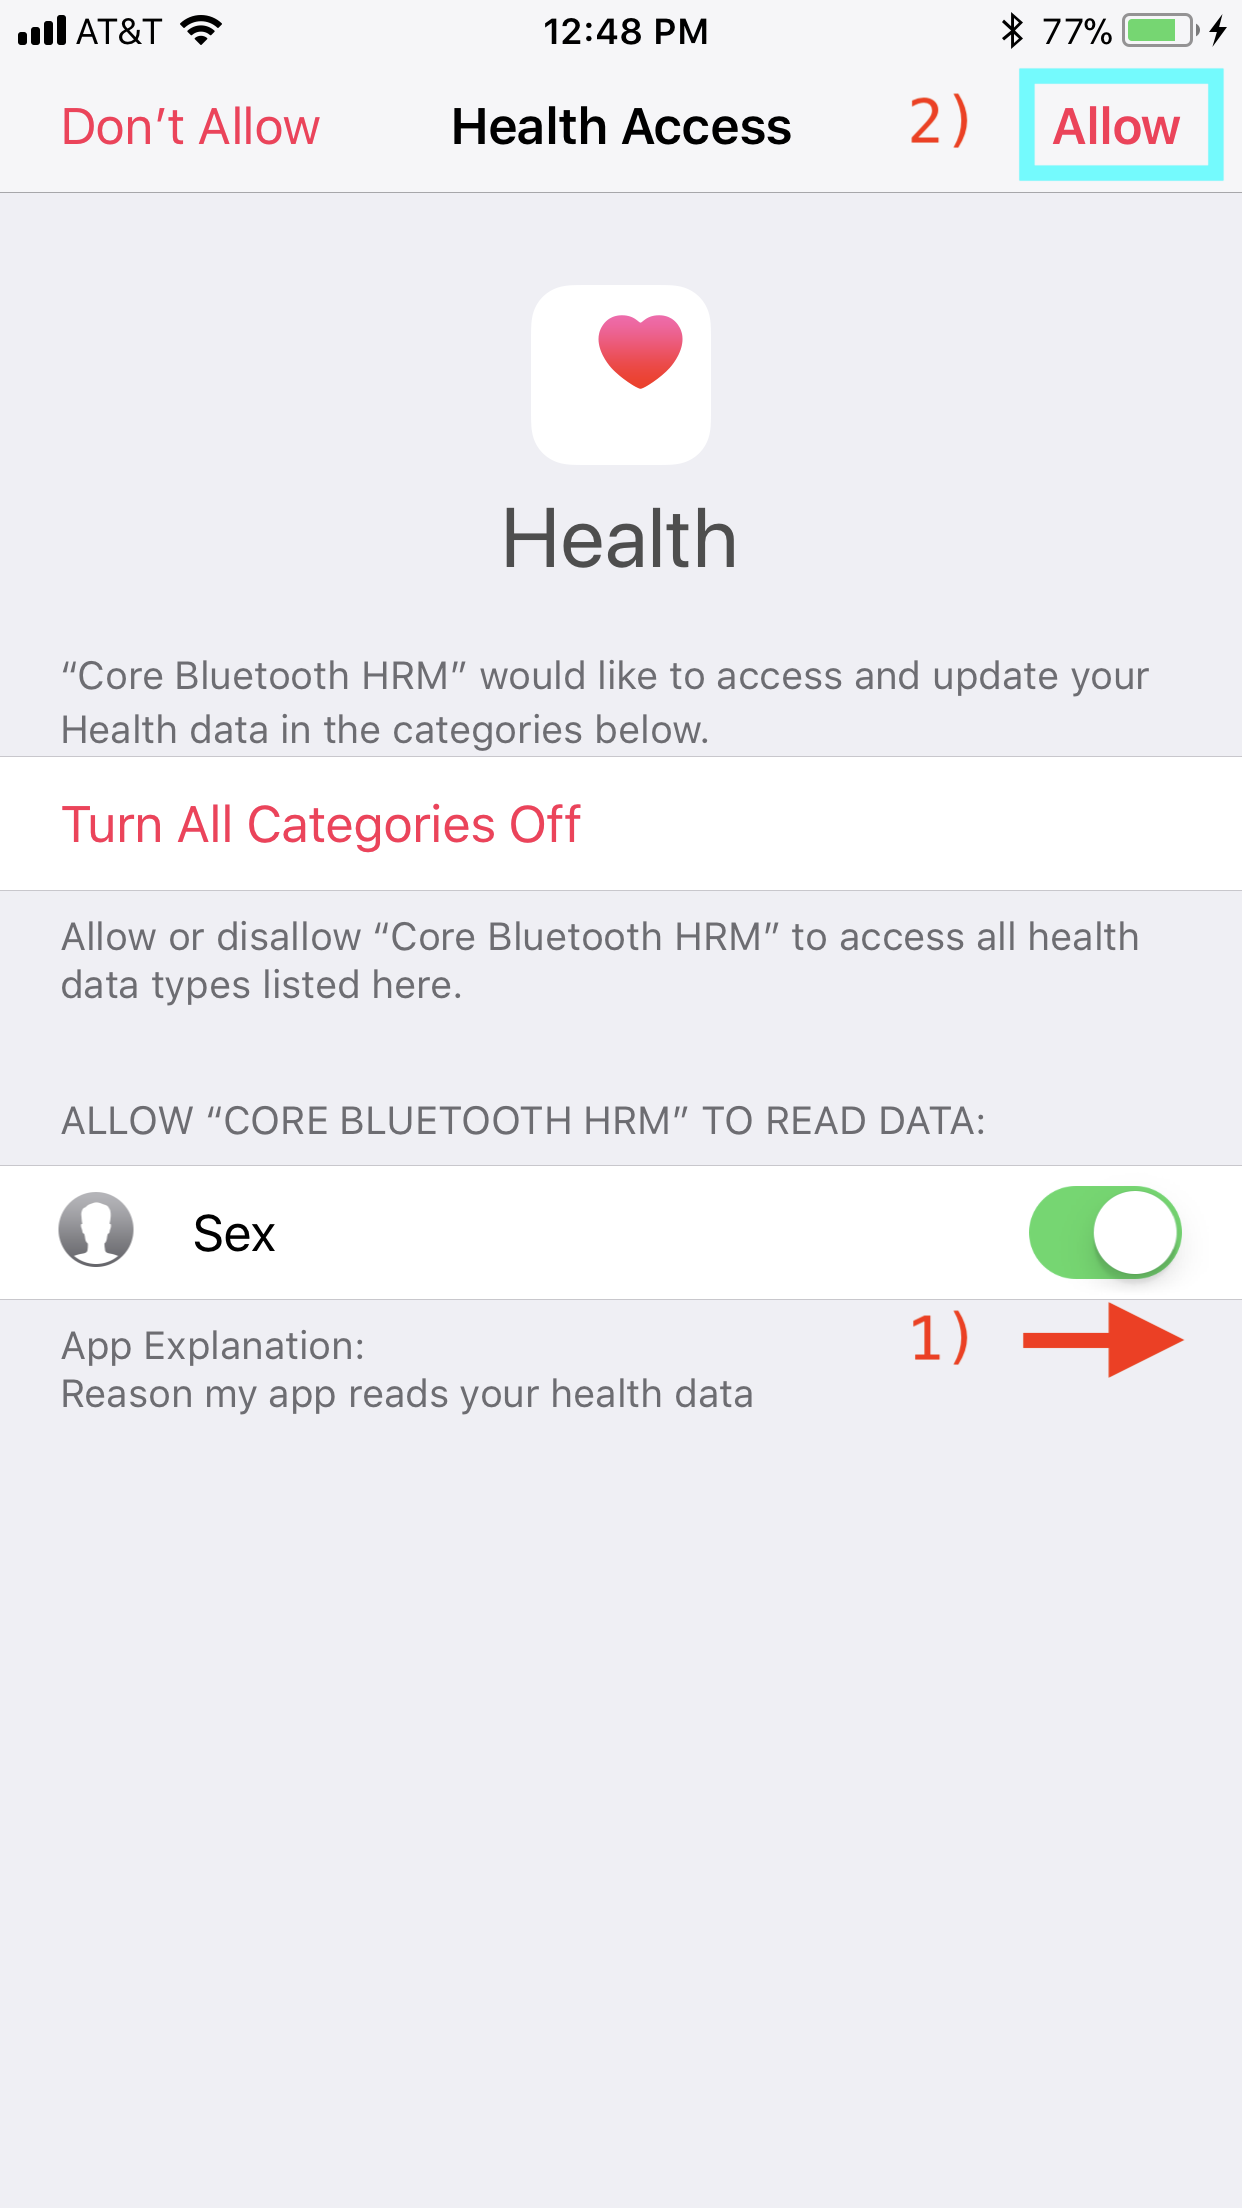 Introduction to iOS HealthKit with Core Bluetooth using Swift 4